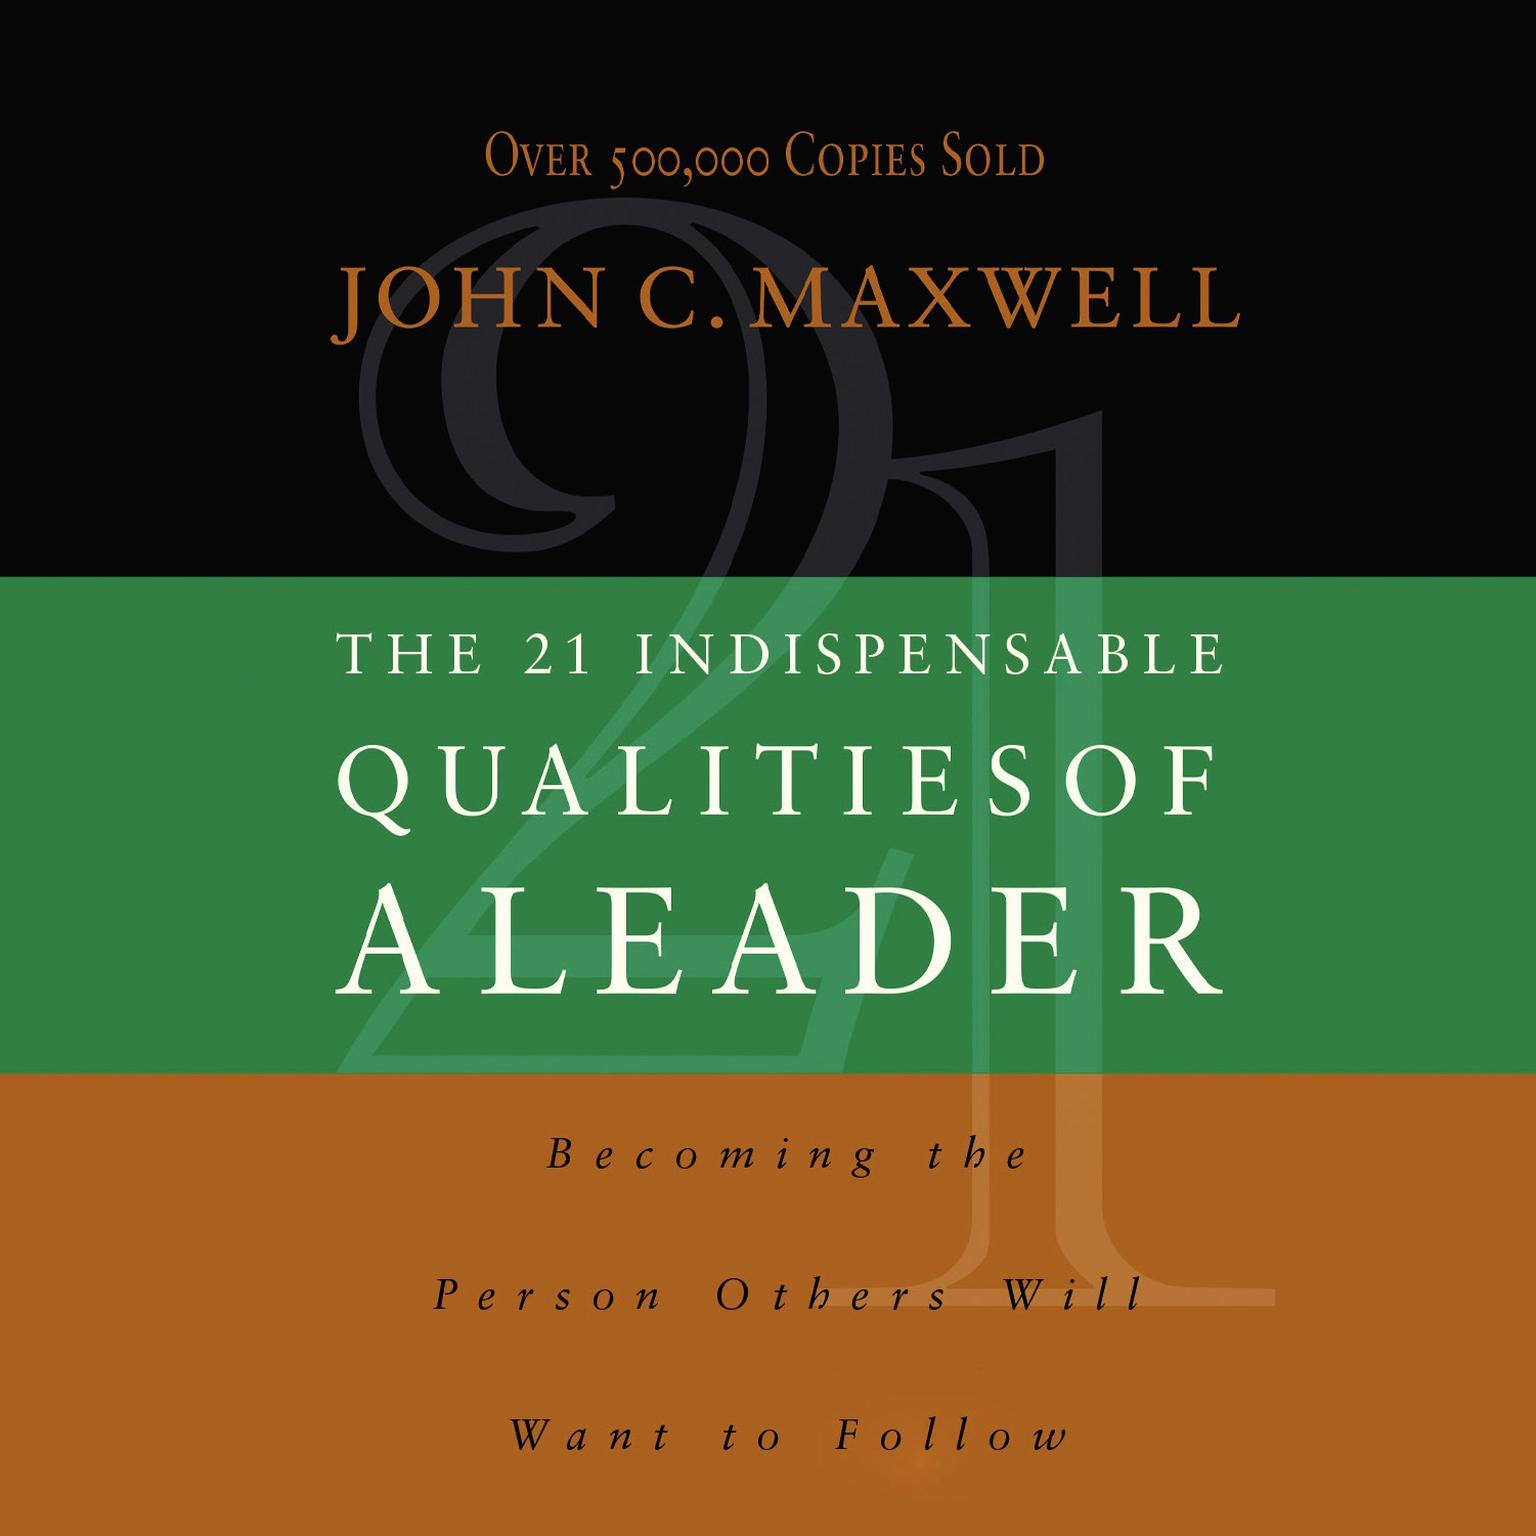 The 21 Indispensable Qualities of a Leader (Abridged): Becoming the Person Others Will Want to Follow Audiobook, by John C. Maxwell